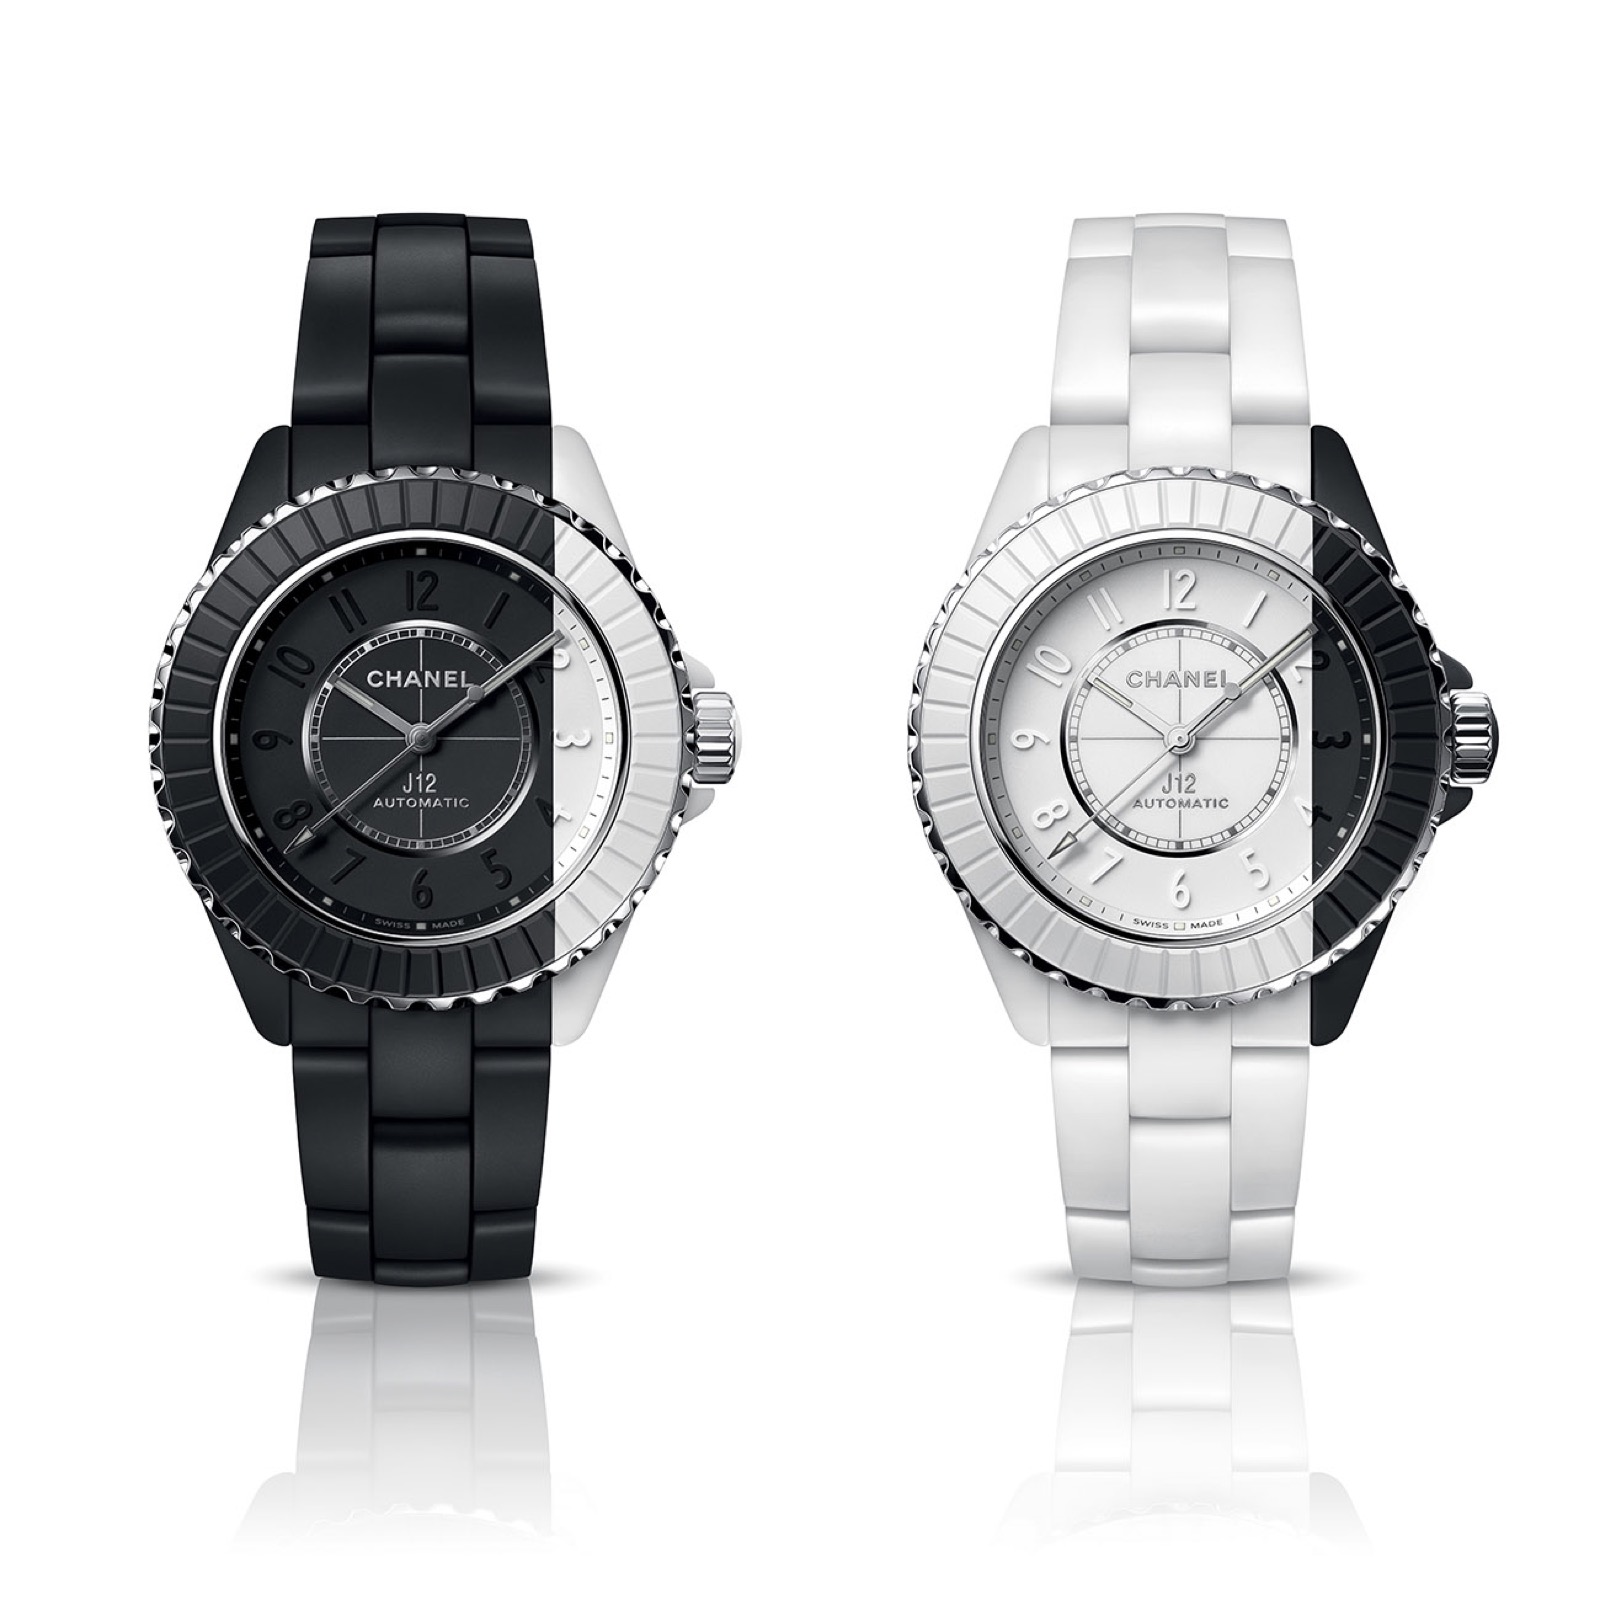 chanel-only-watch-2021